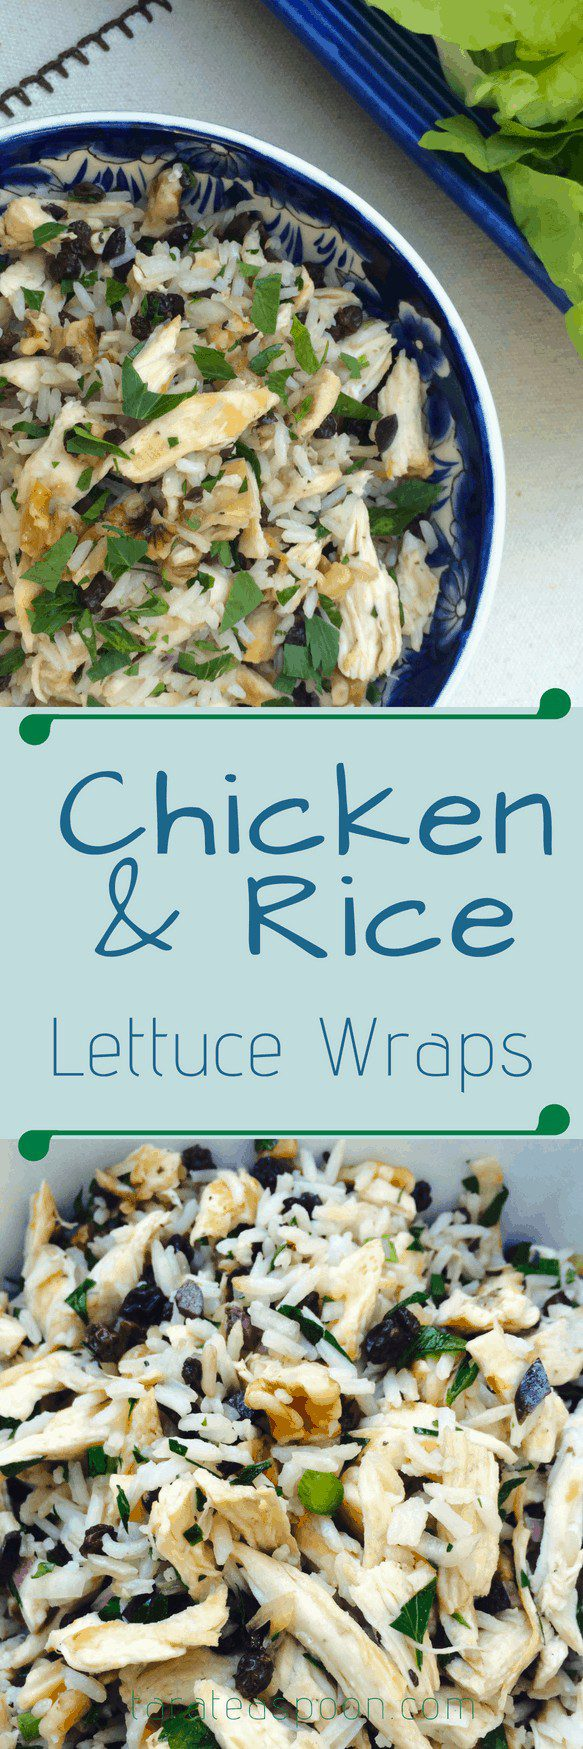 Chicken and Rice lettuce wraps pin